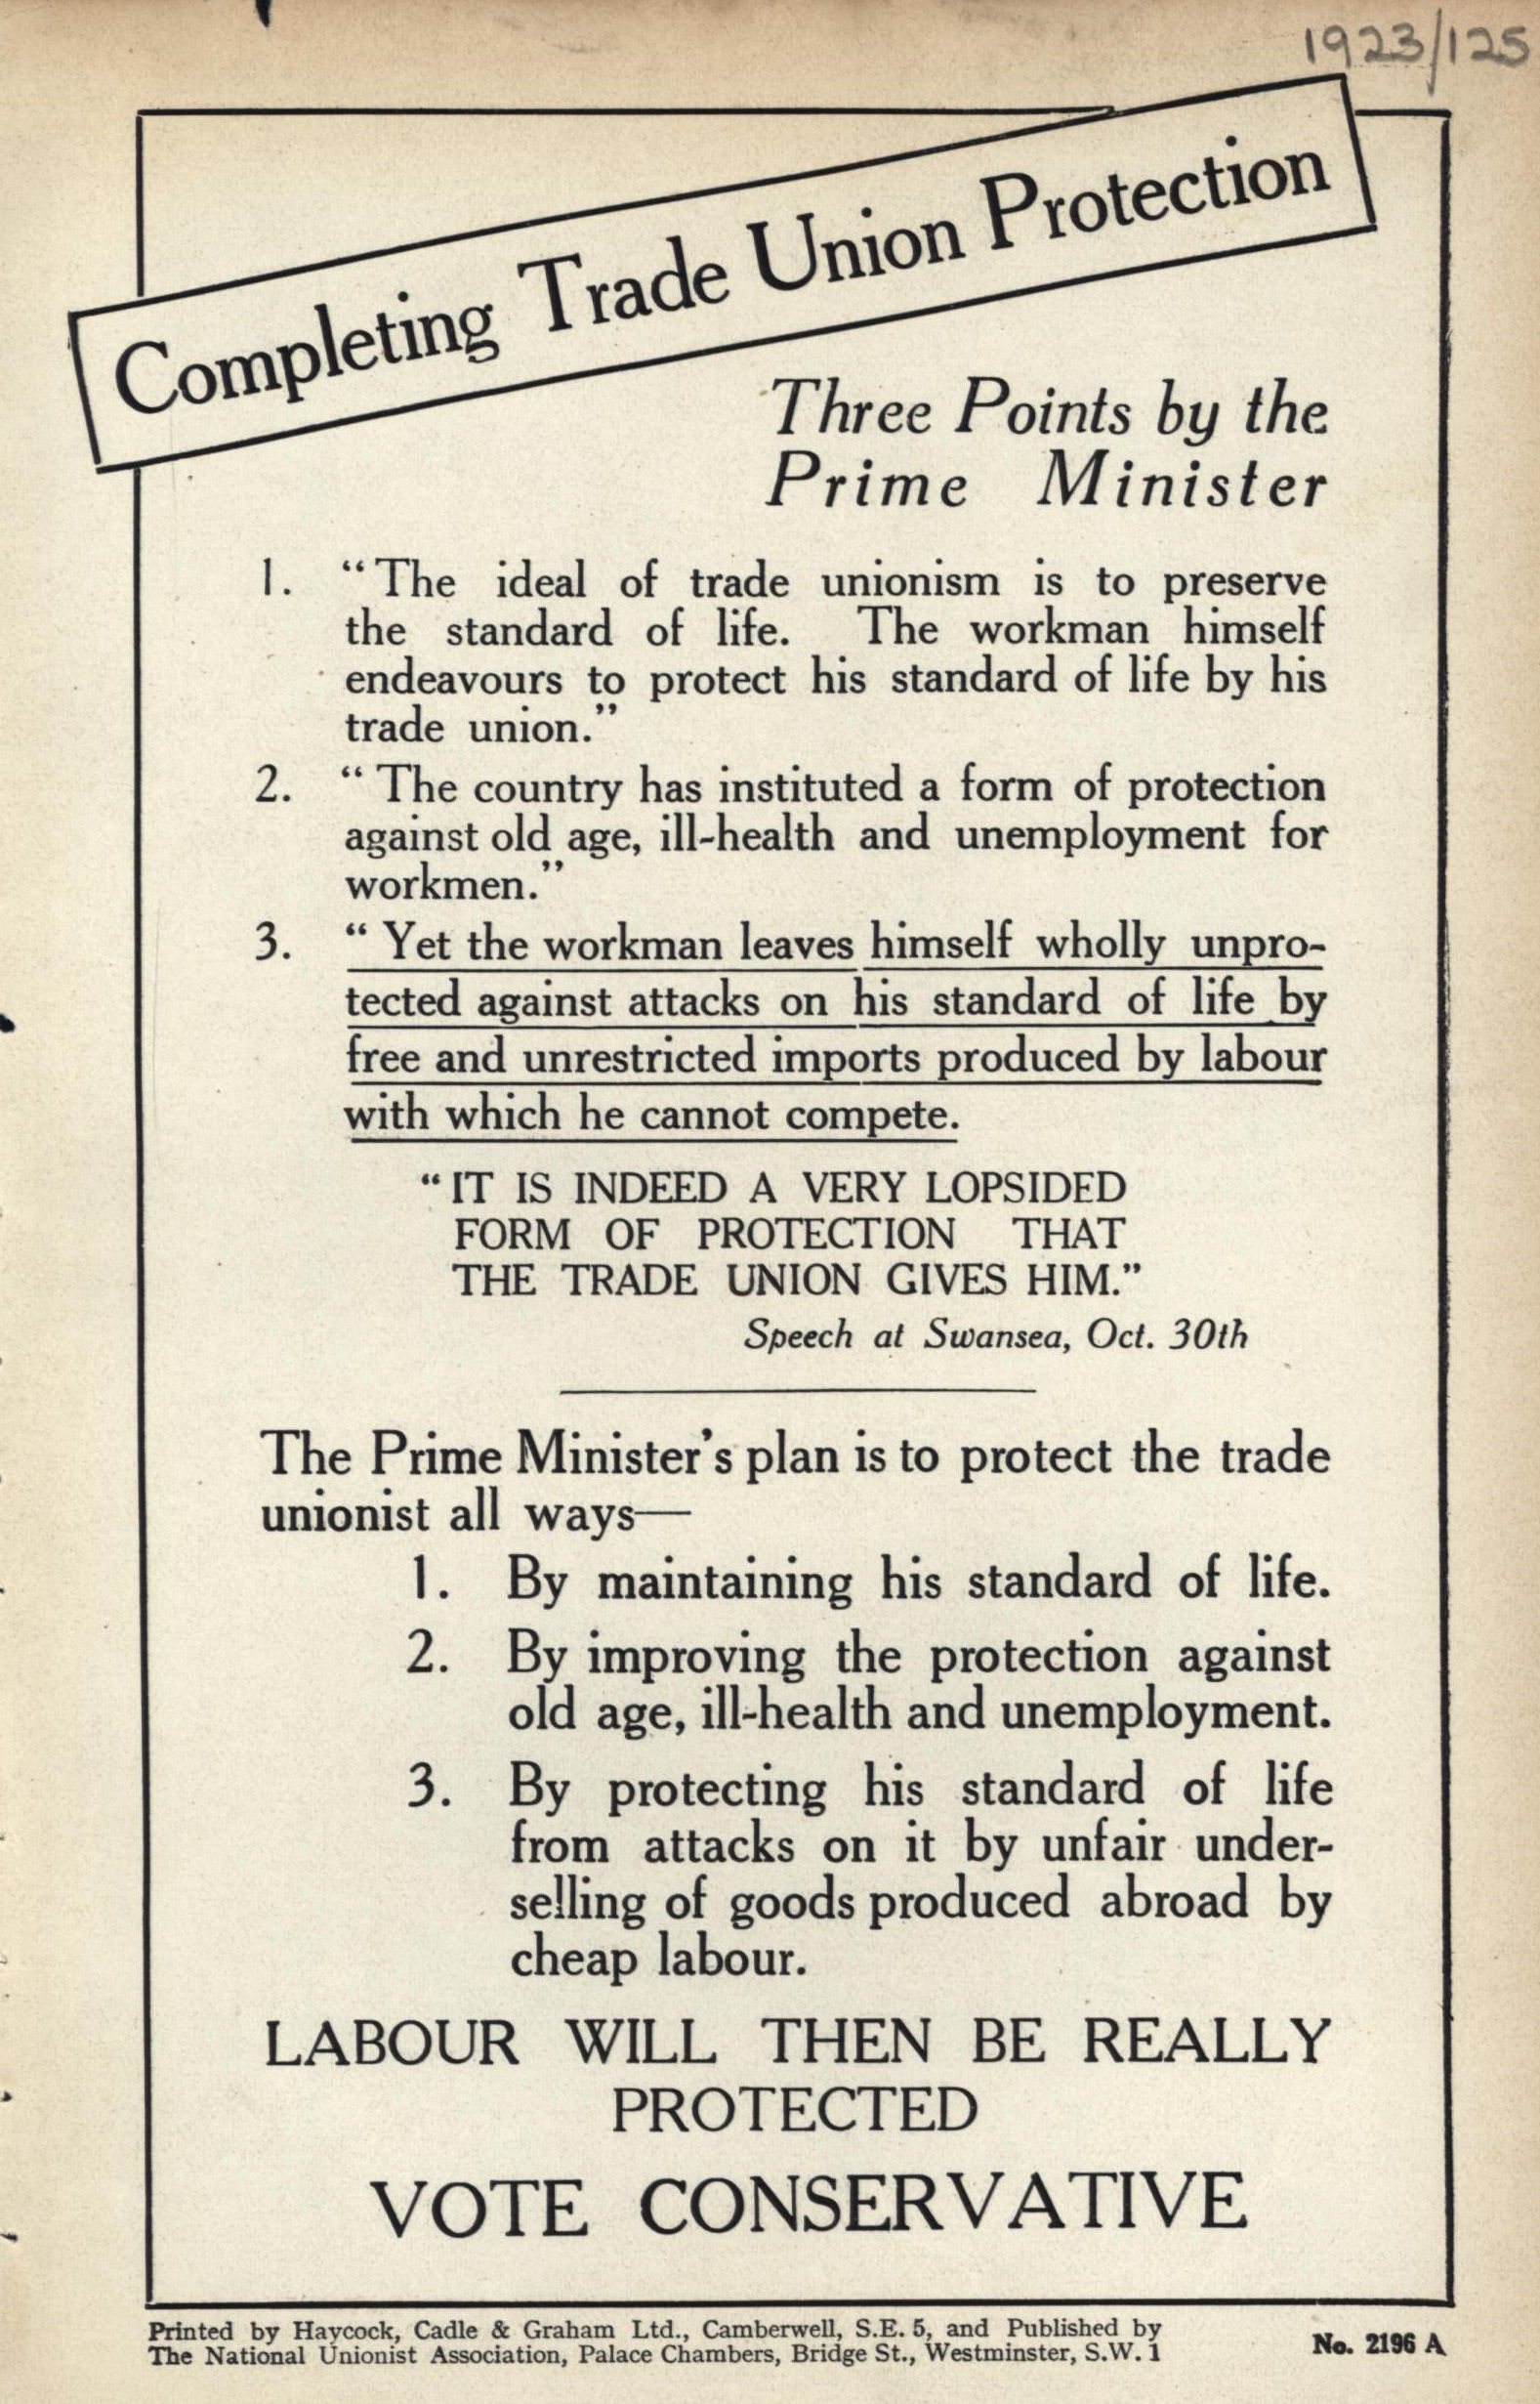 Union Protectionism Leaflet